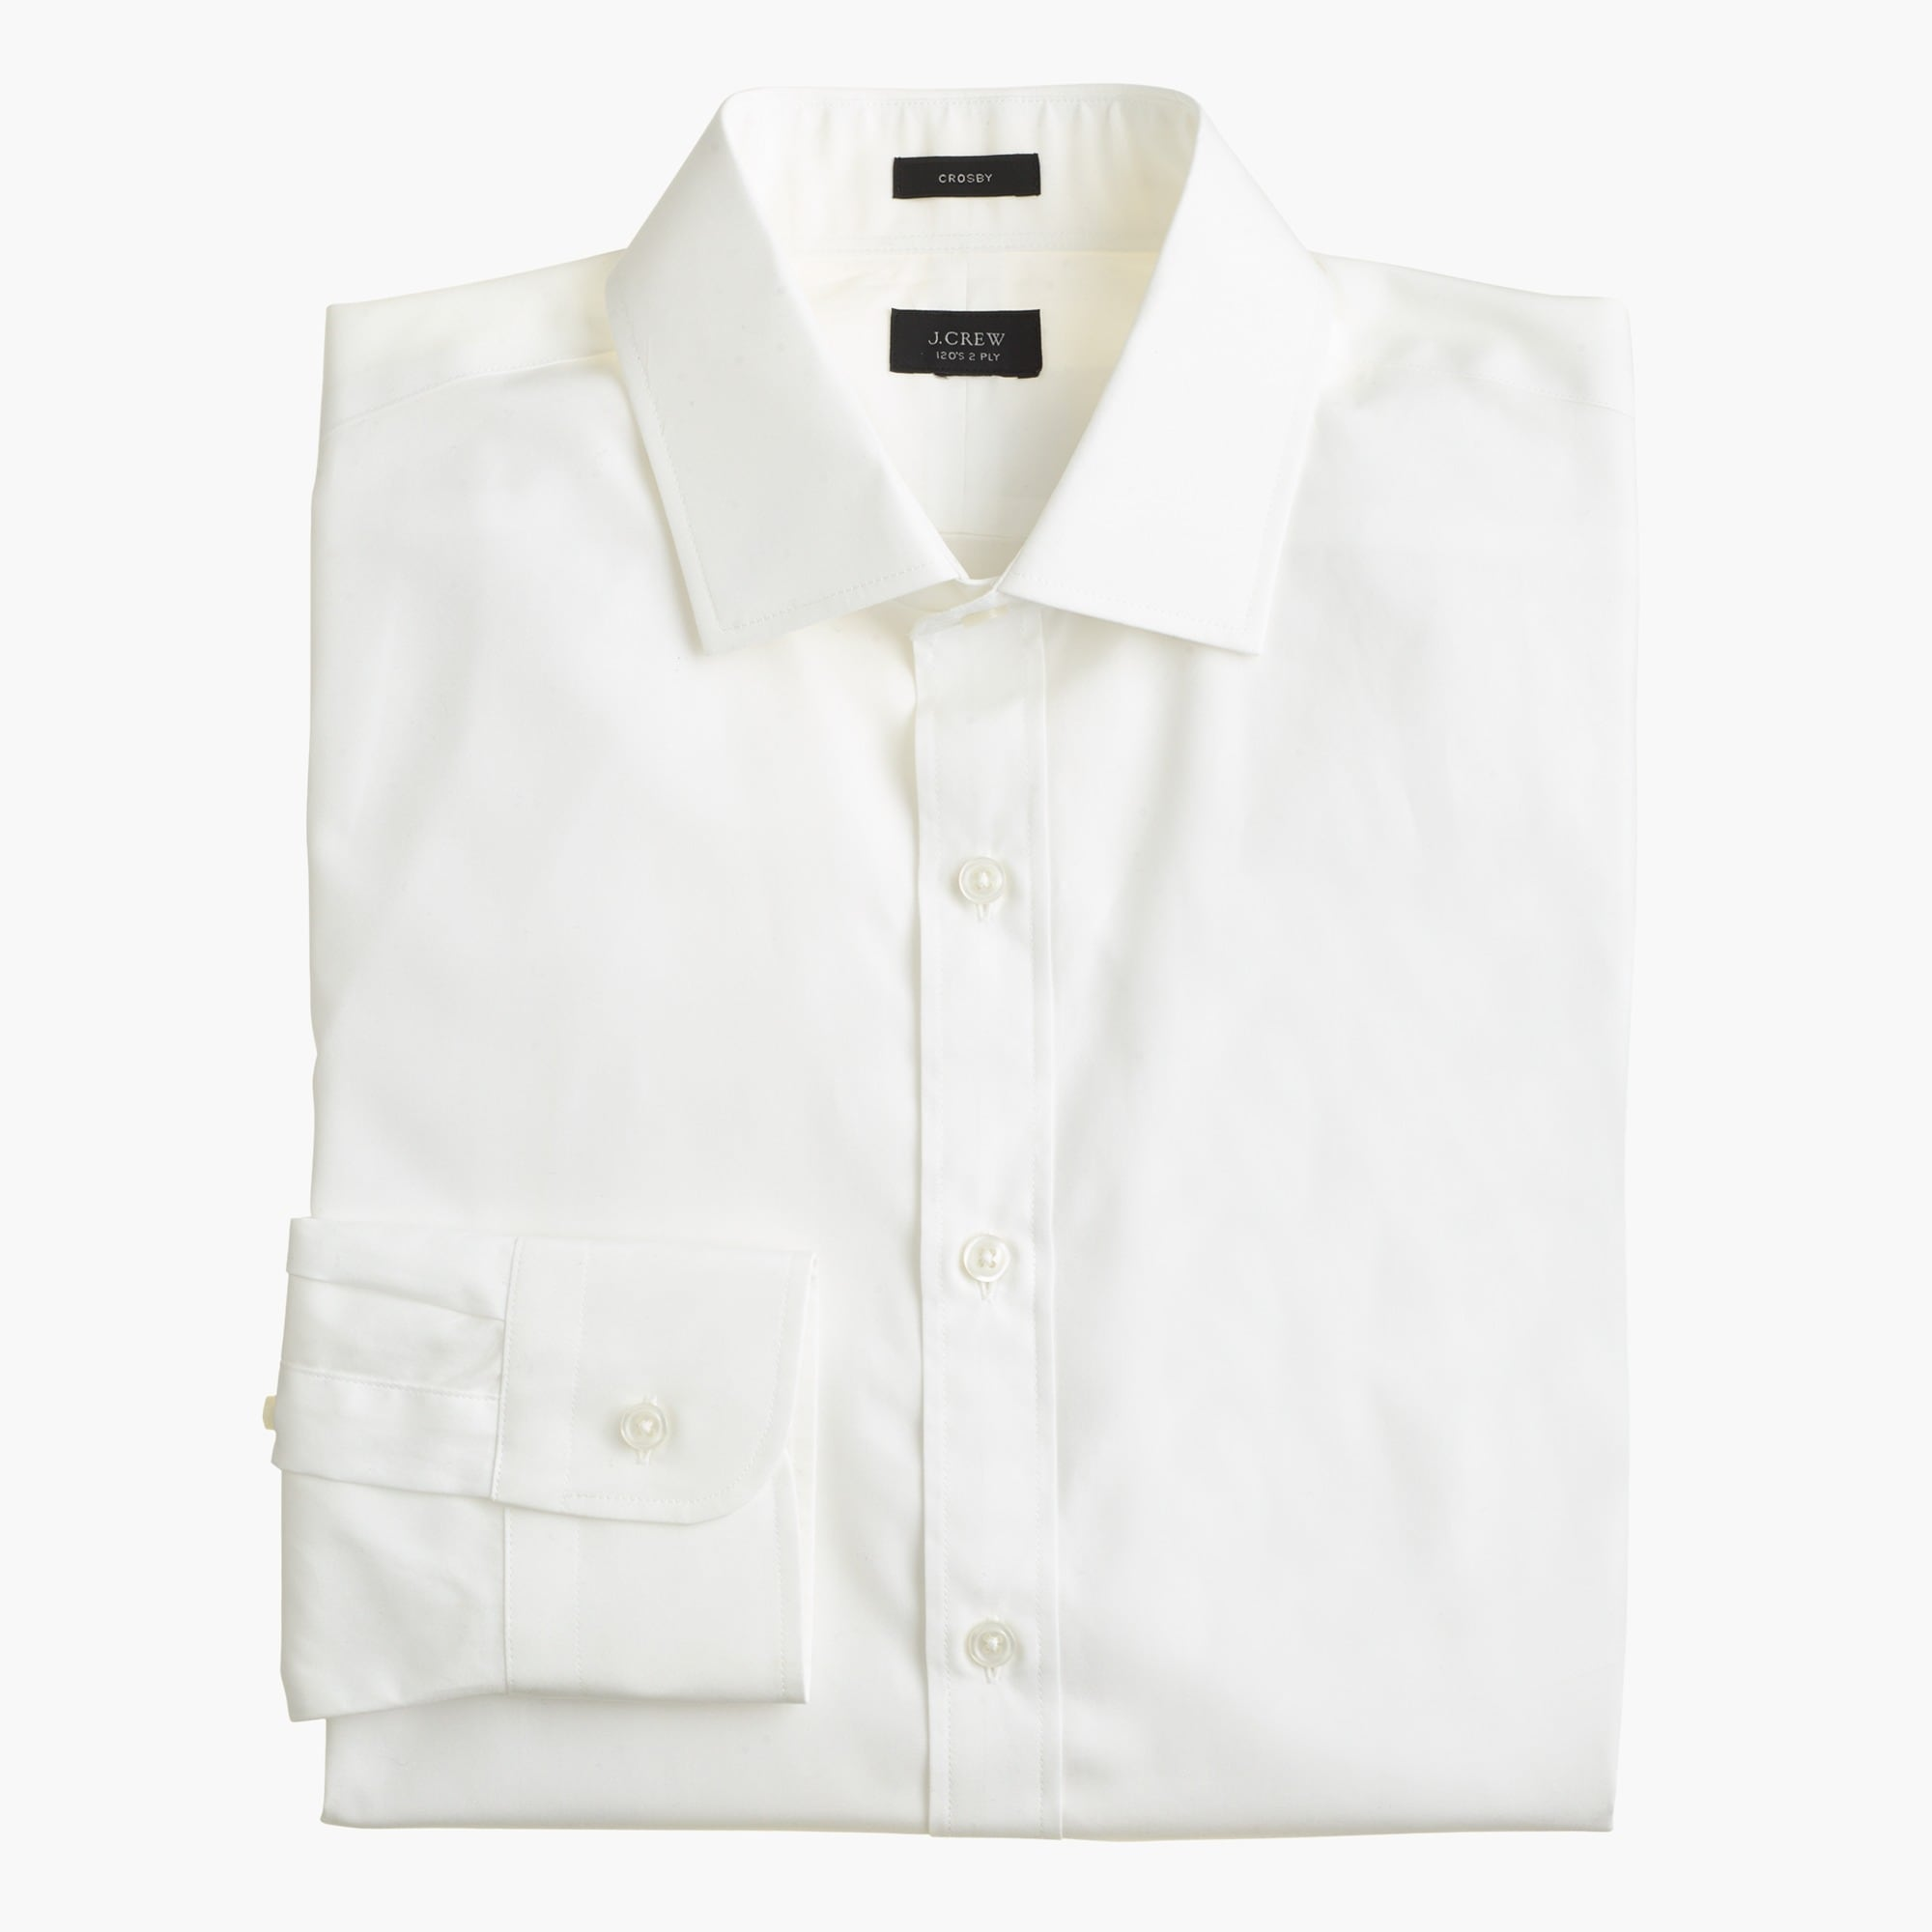 Crosby Classic-fit shirt in white